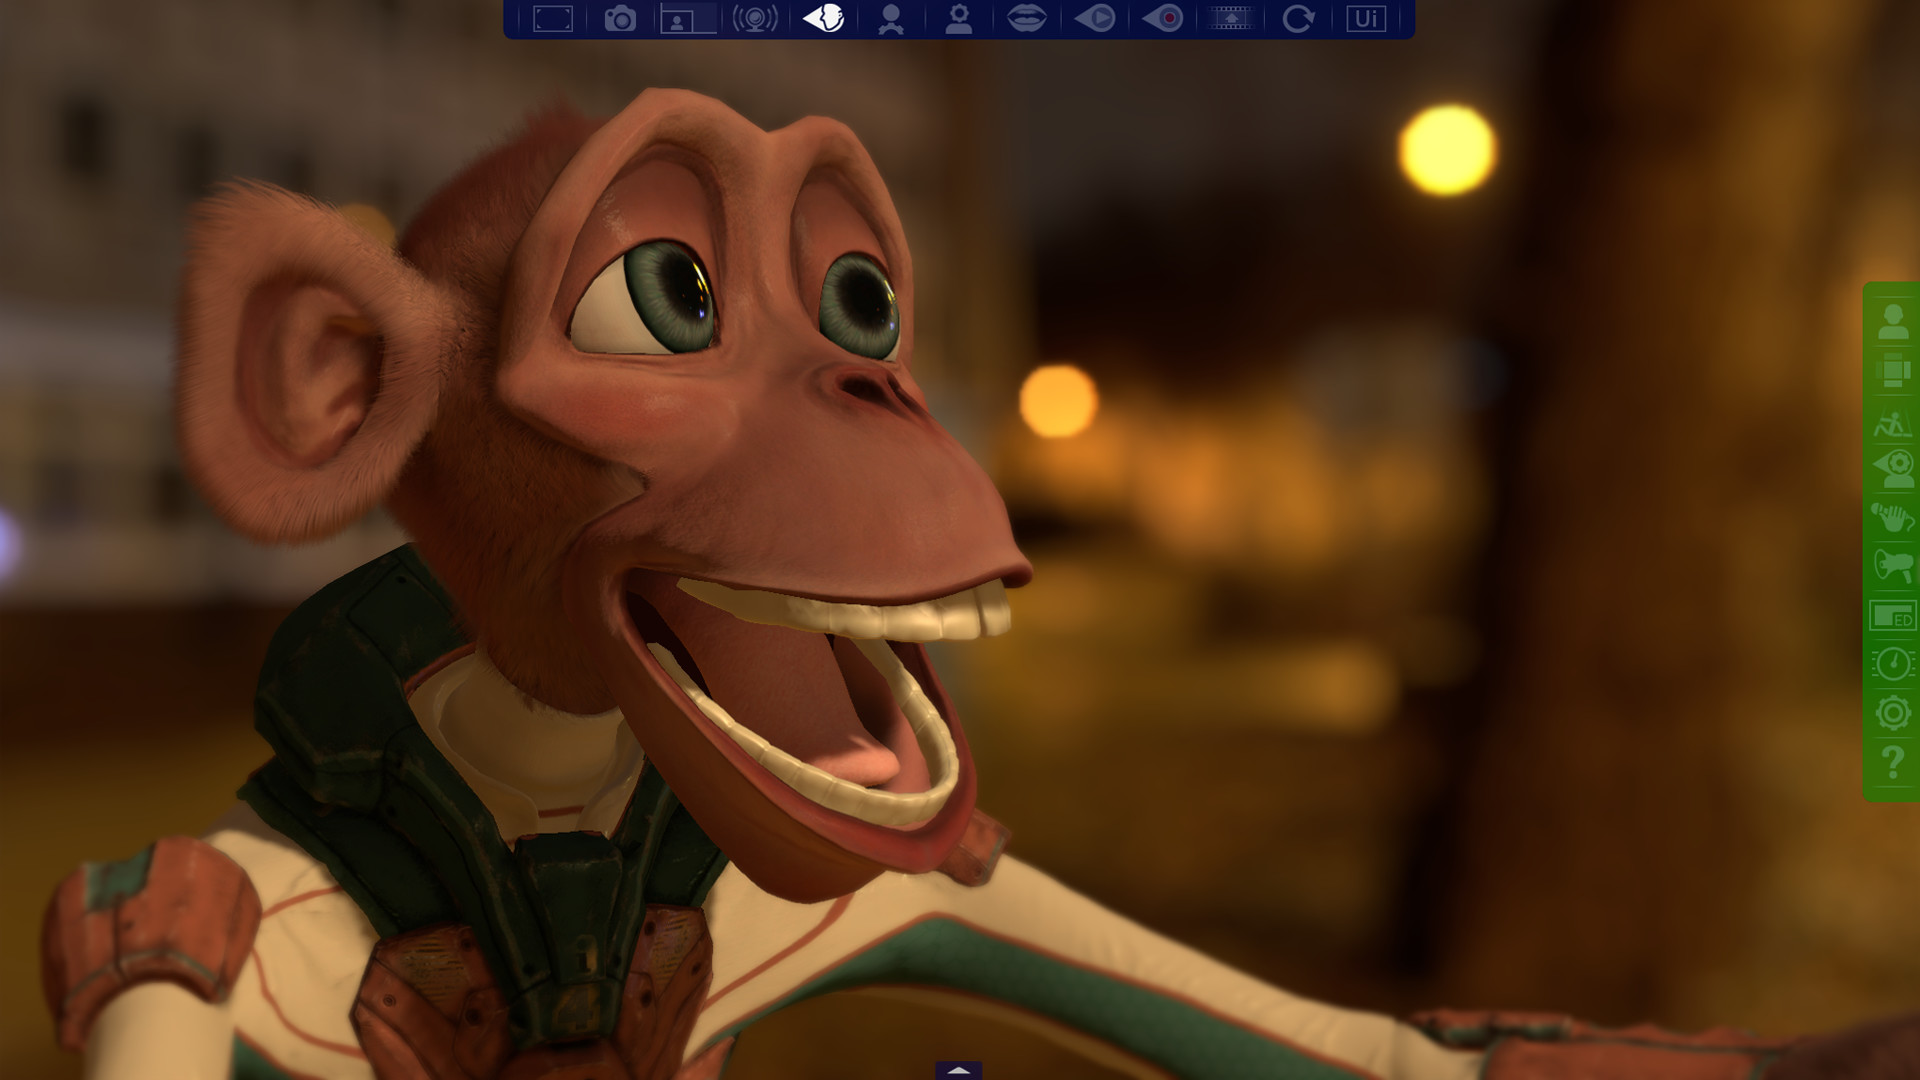 FaceRig Twiggy the Monkey Avatar Steam Discovery